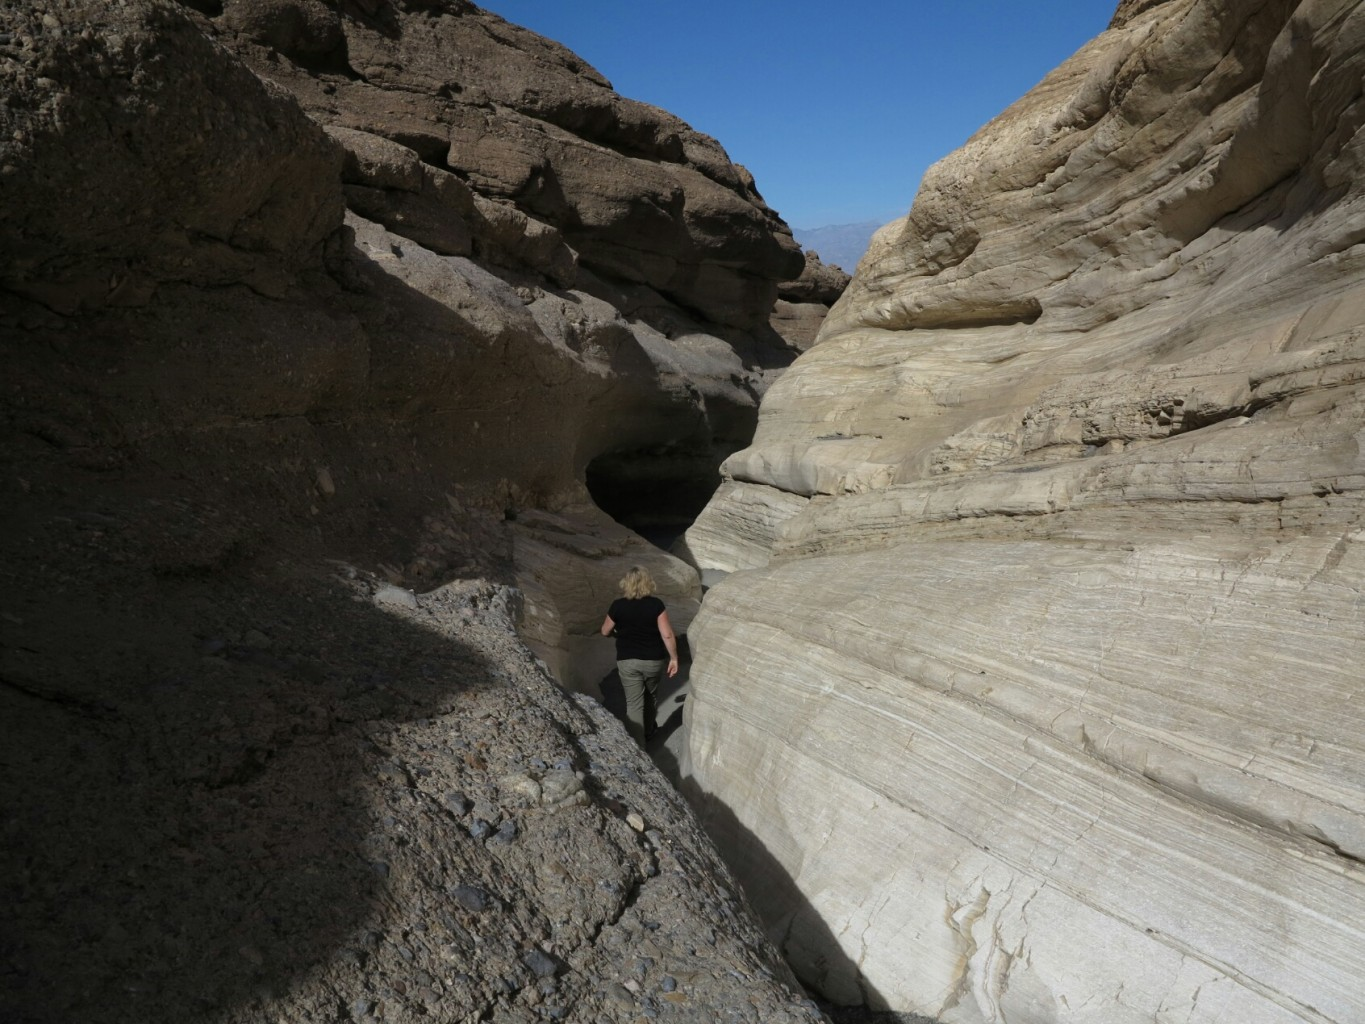 Narrow canyon in Death Valley